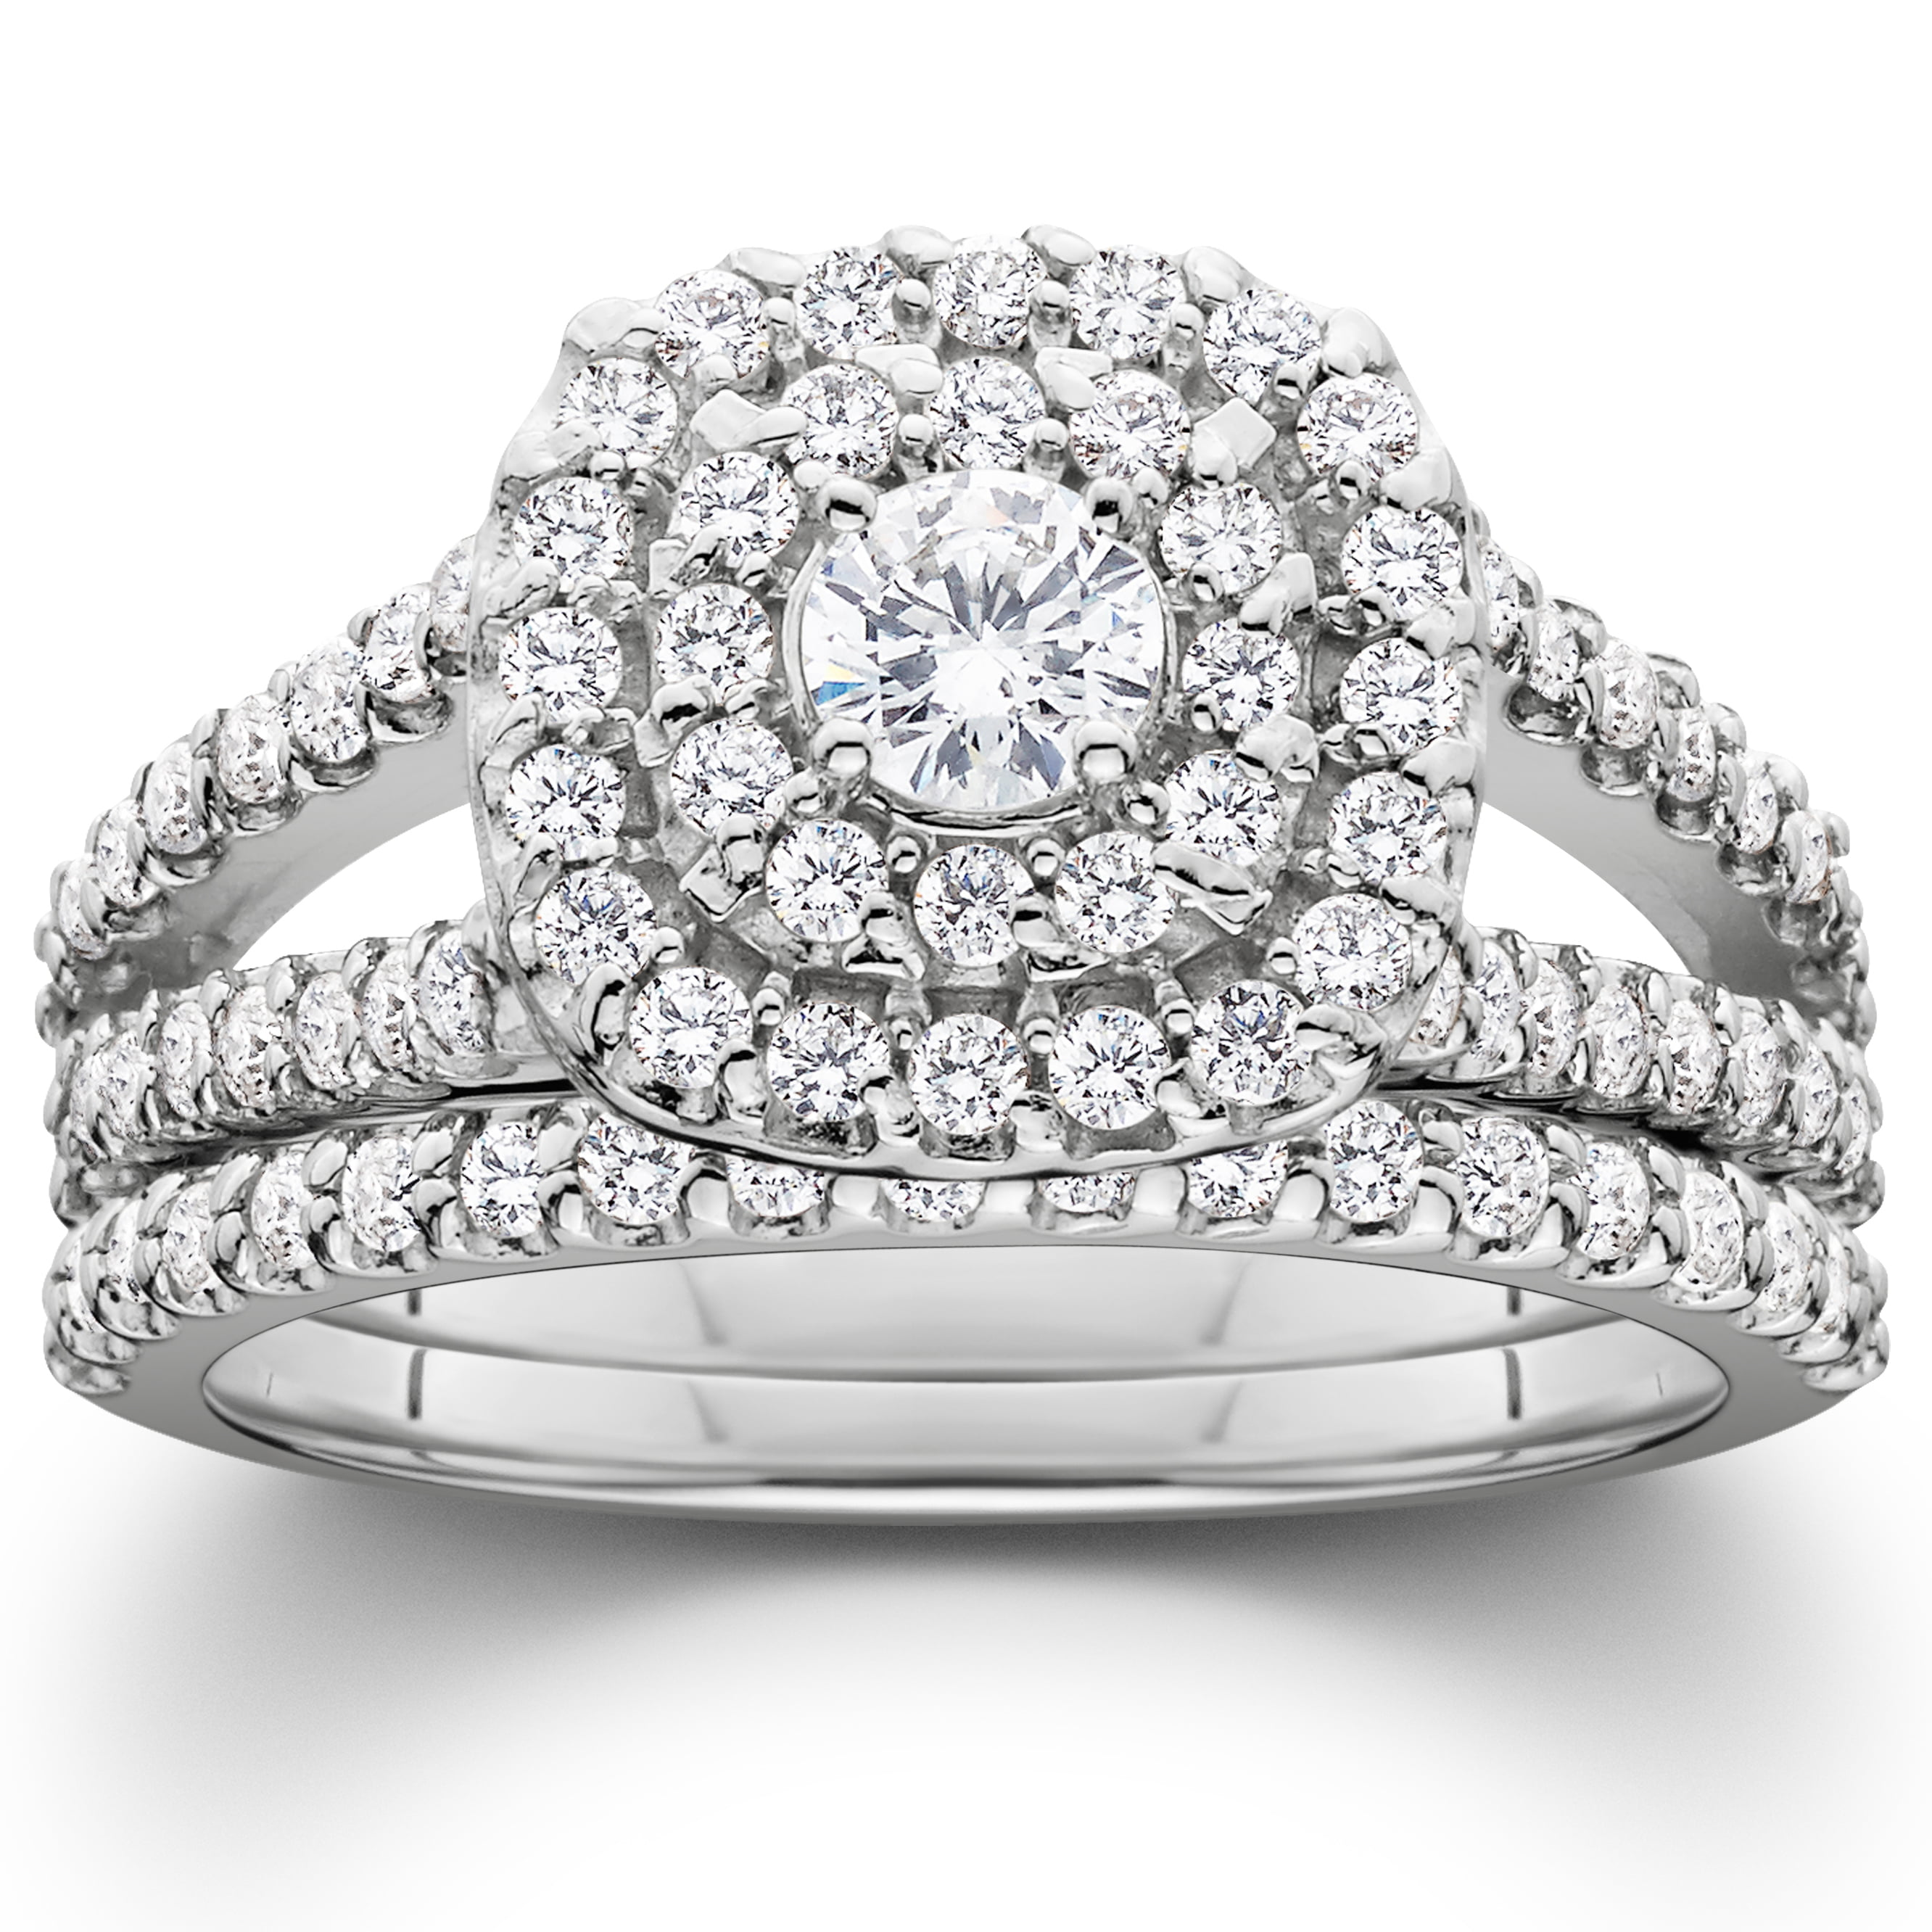 1 1 10ct Cushion Halo Solitaire Diamond Engagement Wedding Ring Set 10K White Gold by Pompeii3